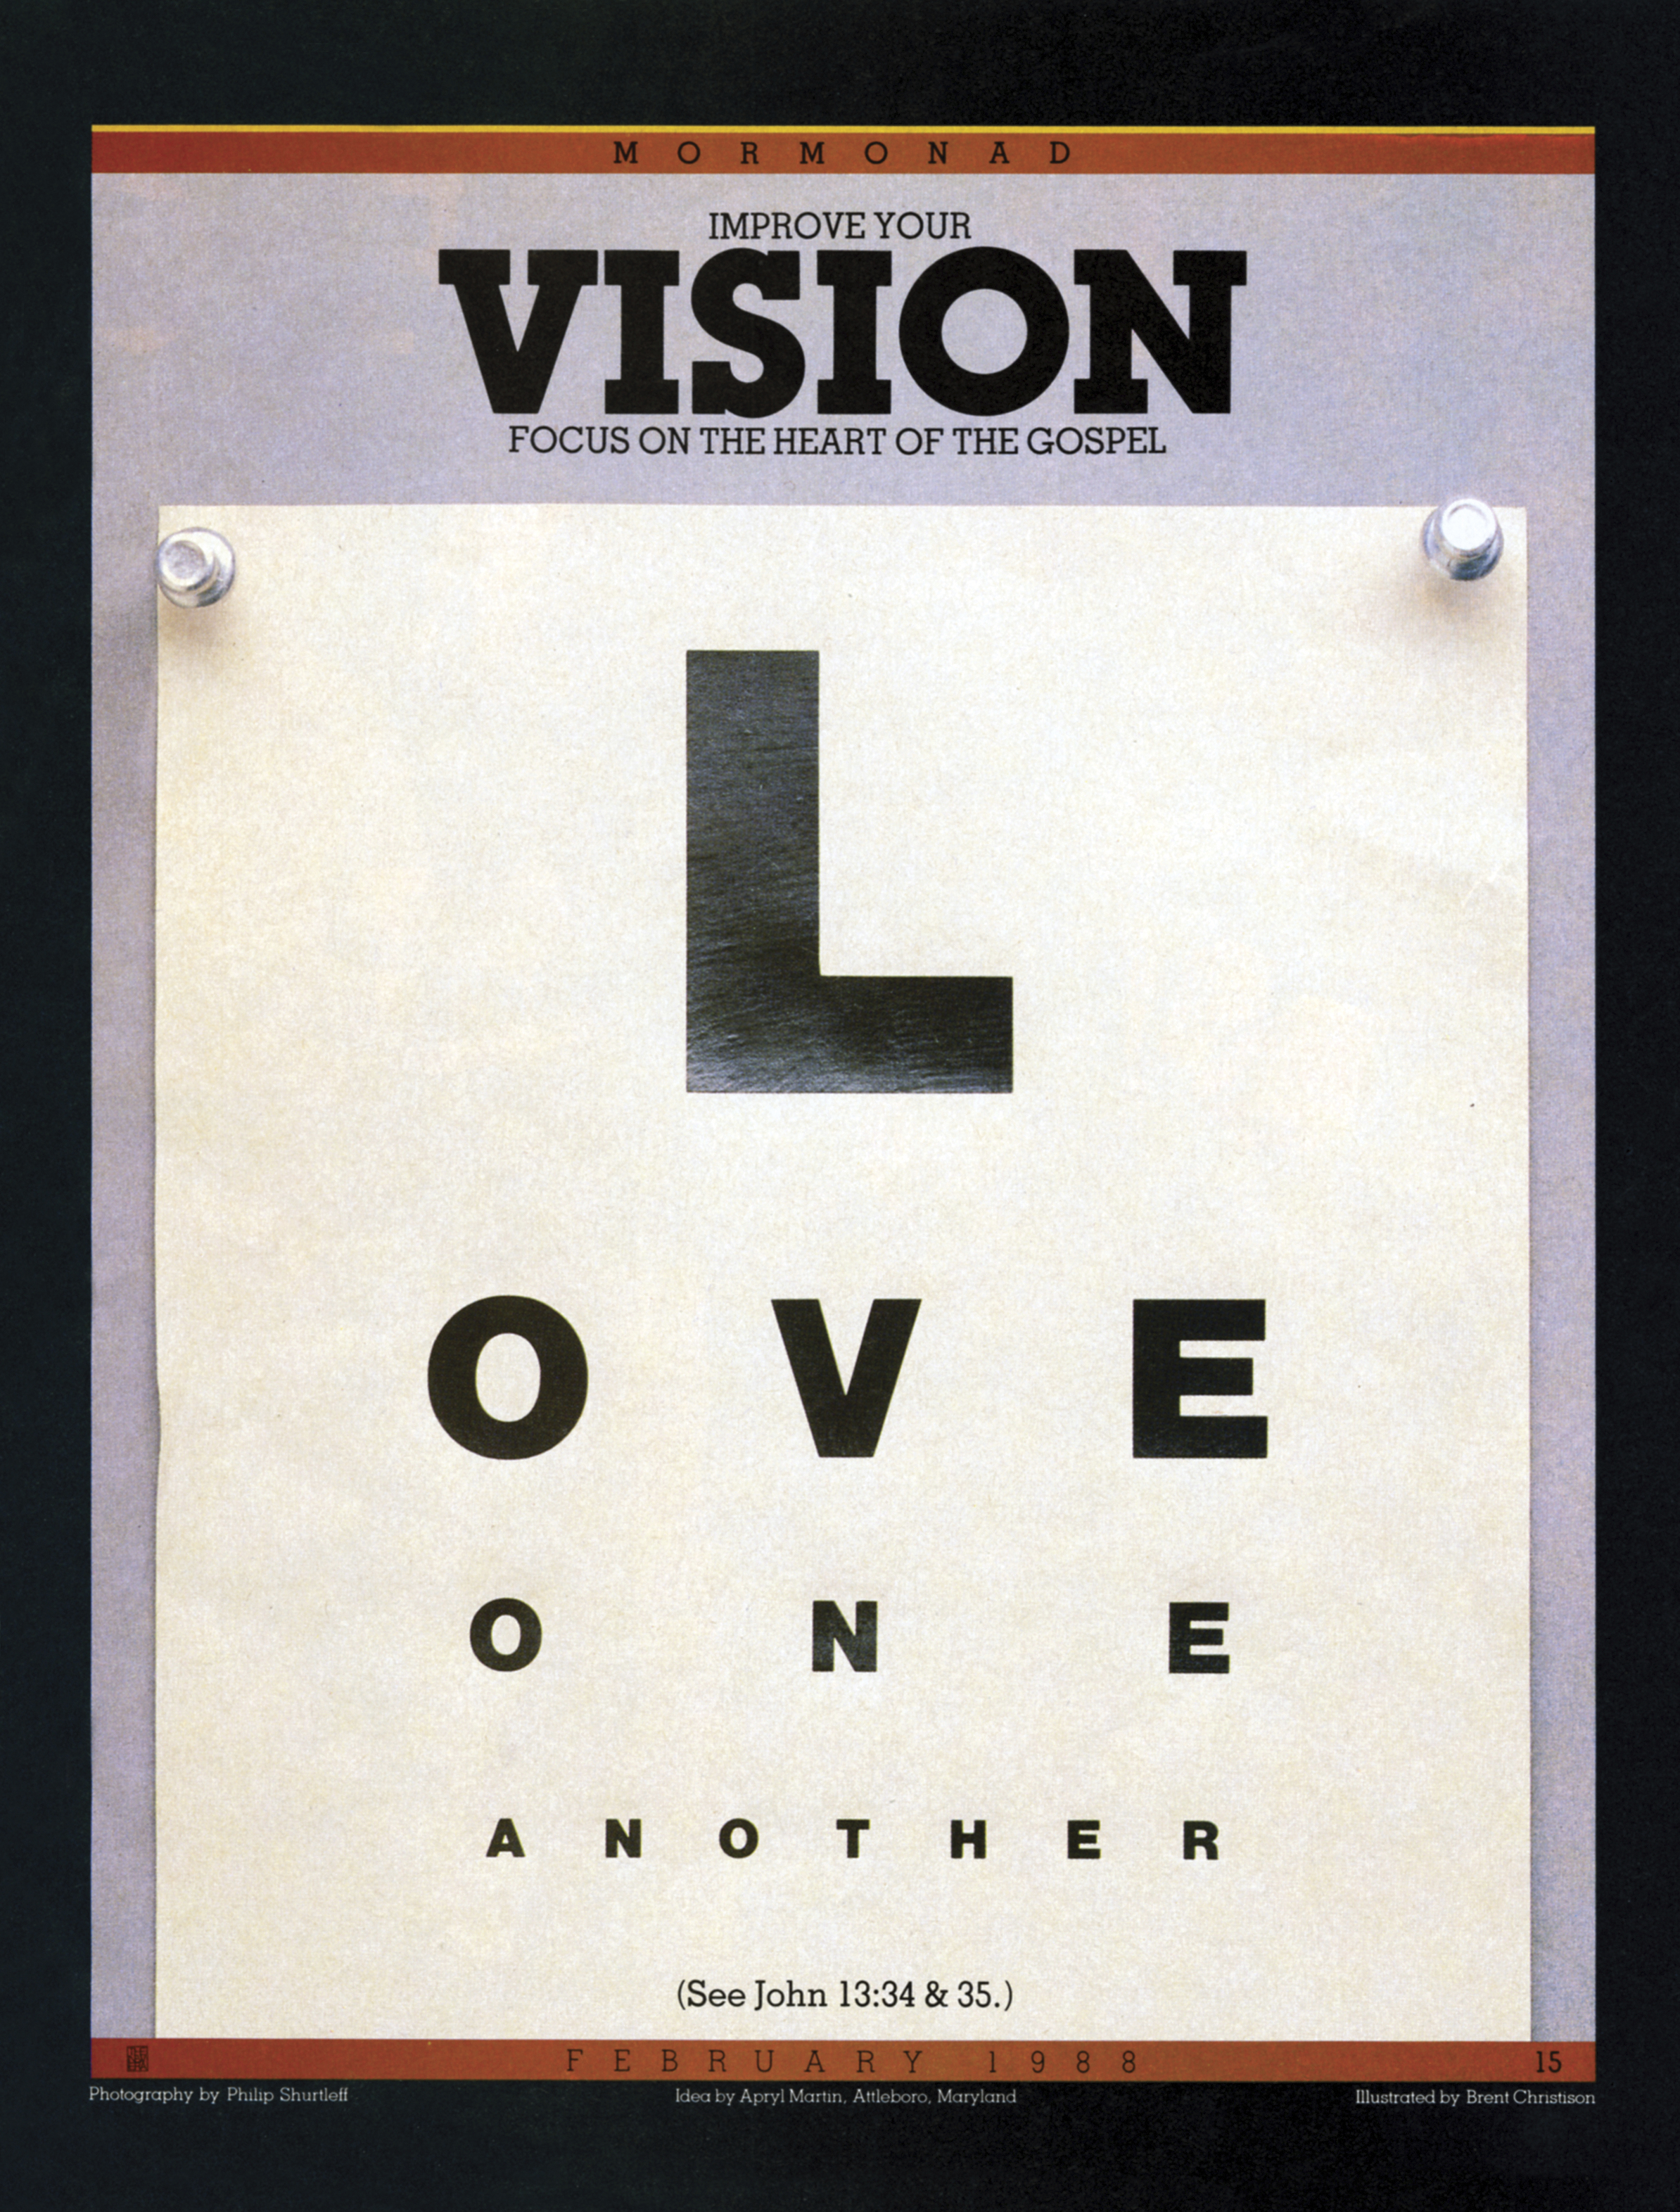 Improve Your Vision. Focus on the heart of the gospel. Love one another. (See John 13:34 & 35.) Feb. 1988 © undefined ipCode 1.